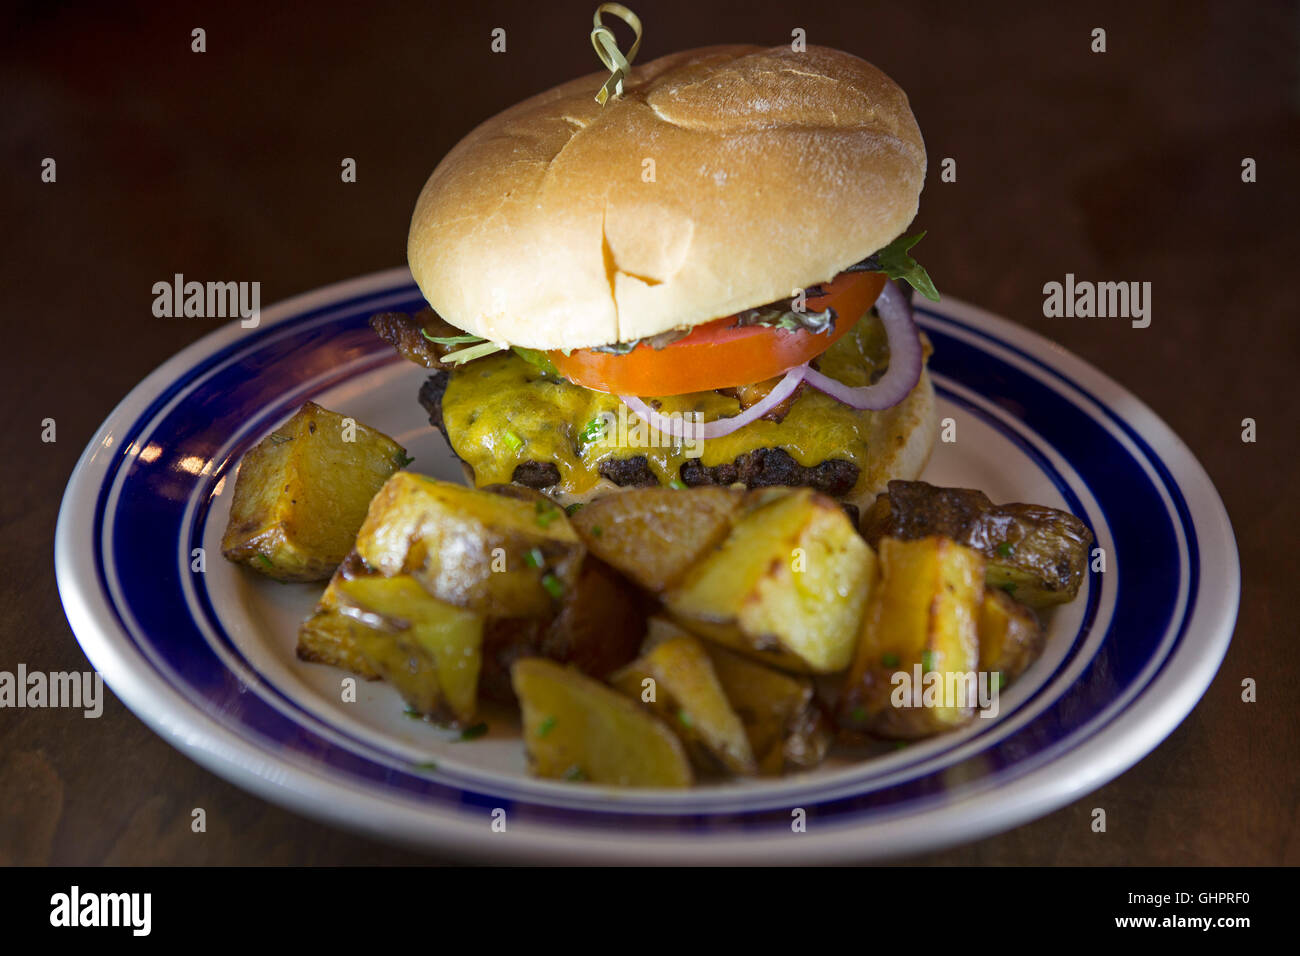 A cheeseburger served with potatoes at Carbonaer in Newfoundland and Labrador, Canada. The potatoes are dusted with - Stock Image